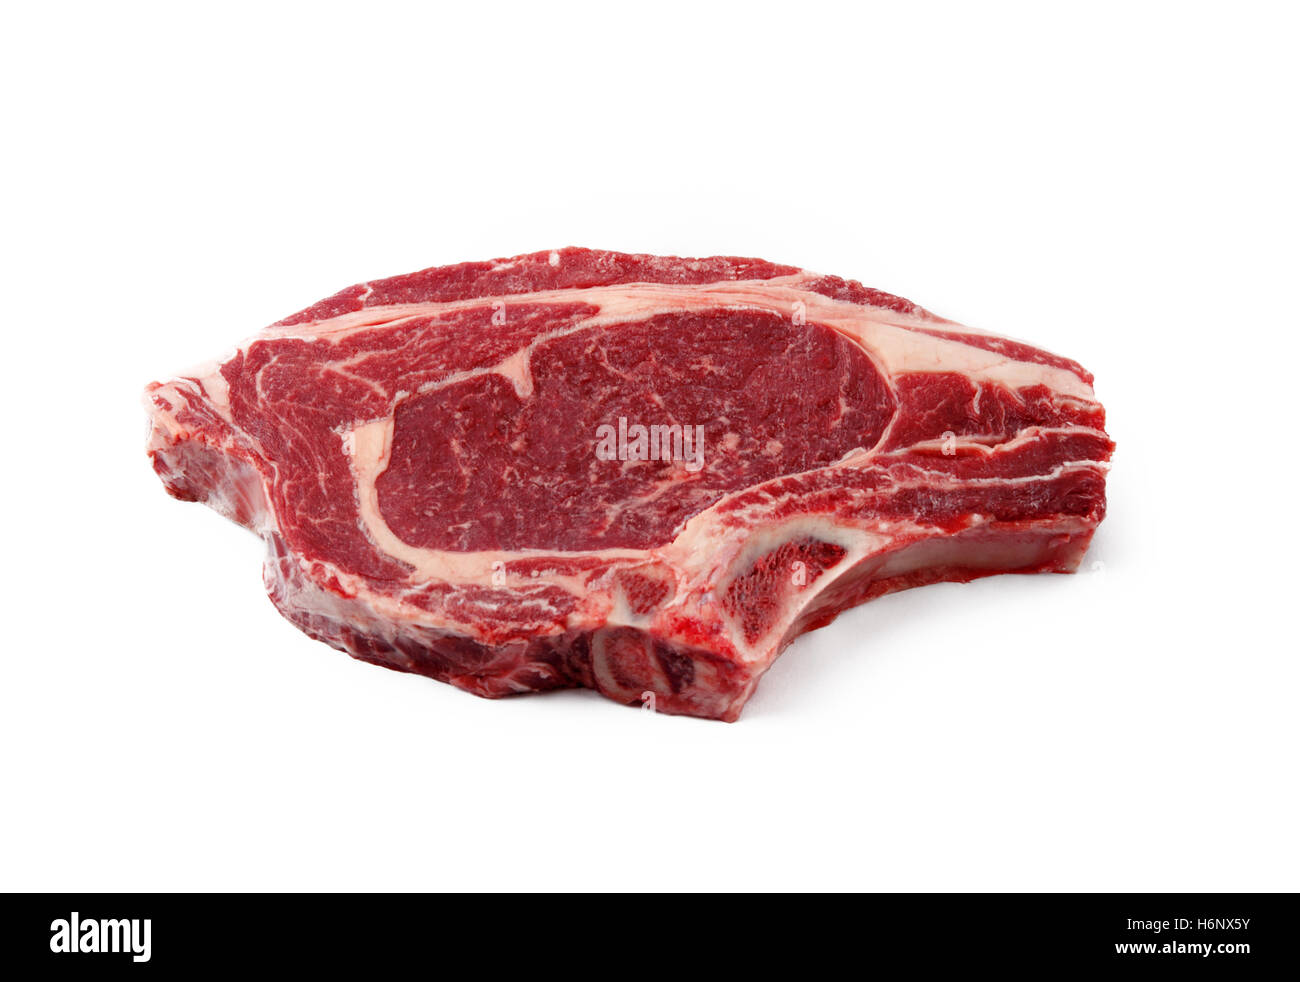 Organic juicy red meat  a steak isolated on a white background - Stock Image